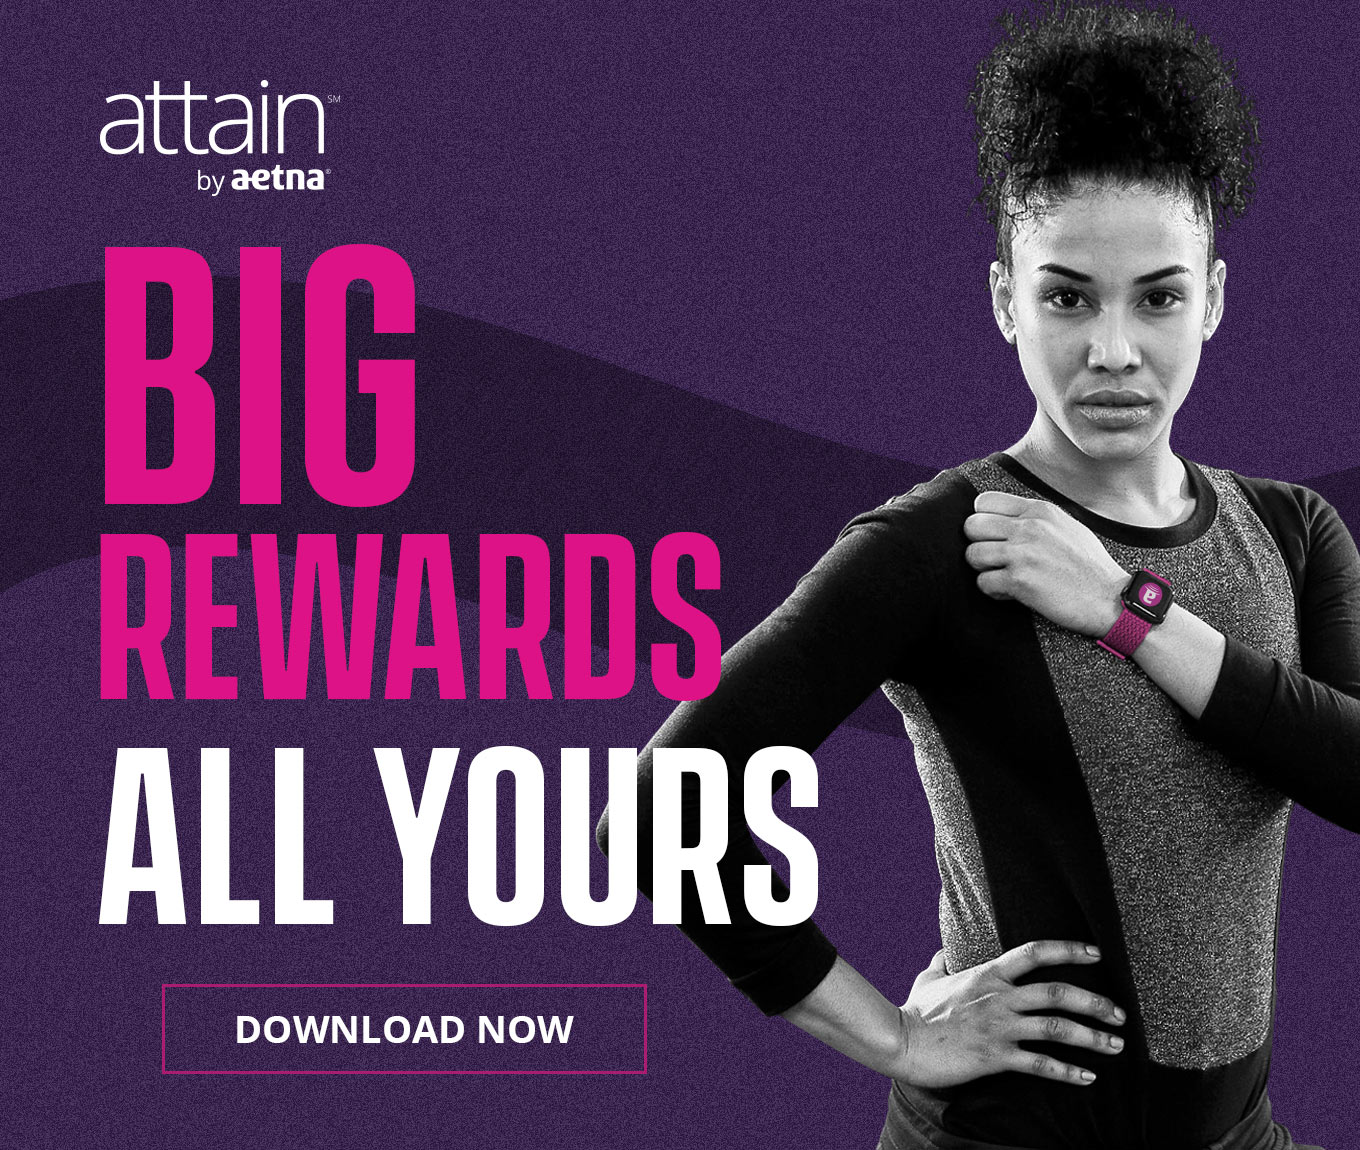 Big rewards, all yours. Download now Opens in new window